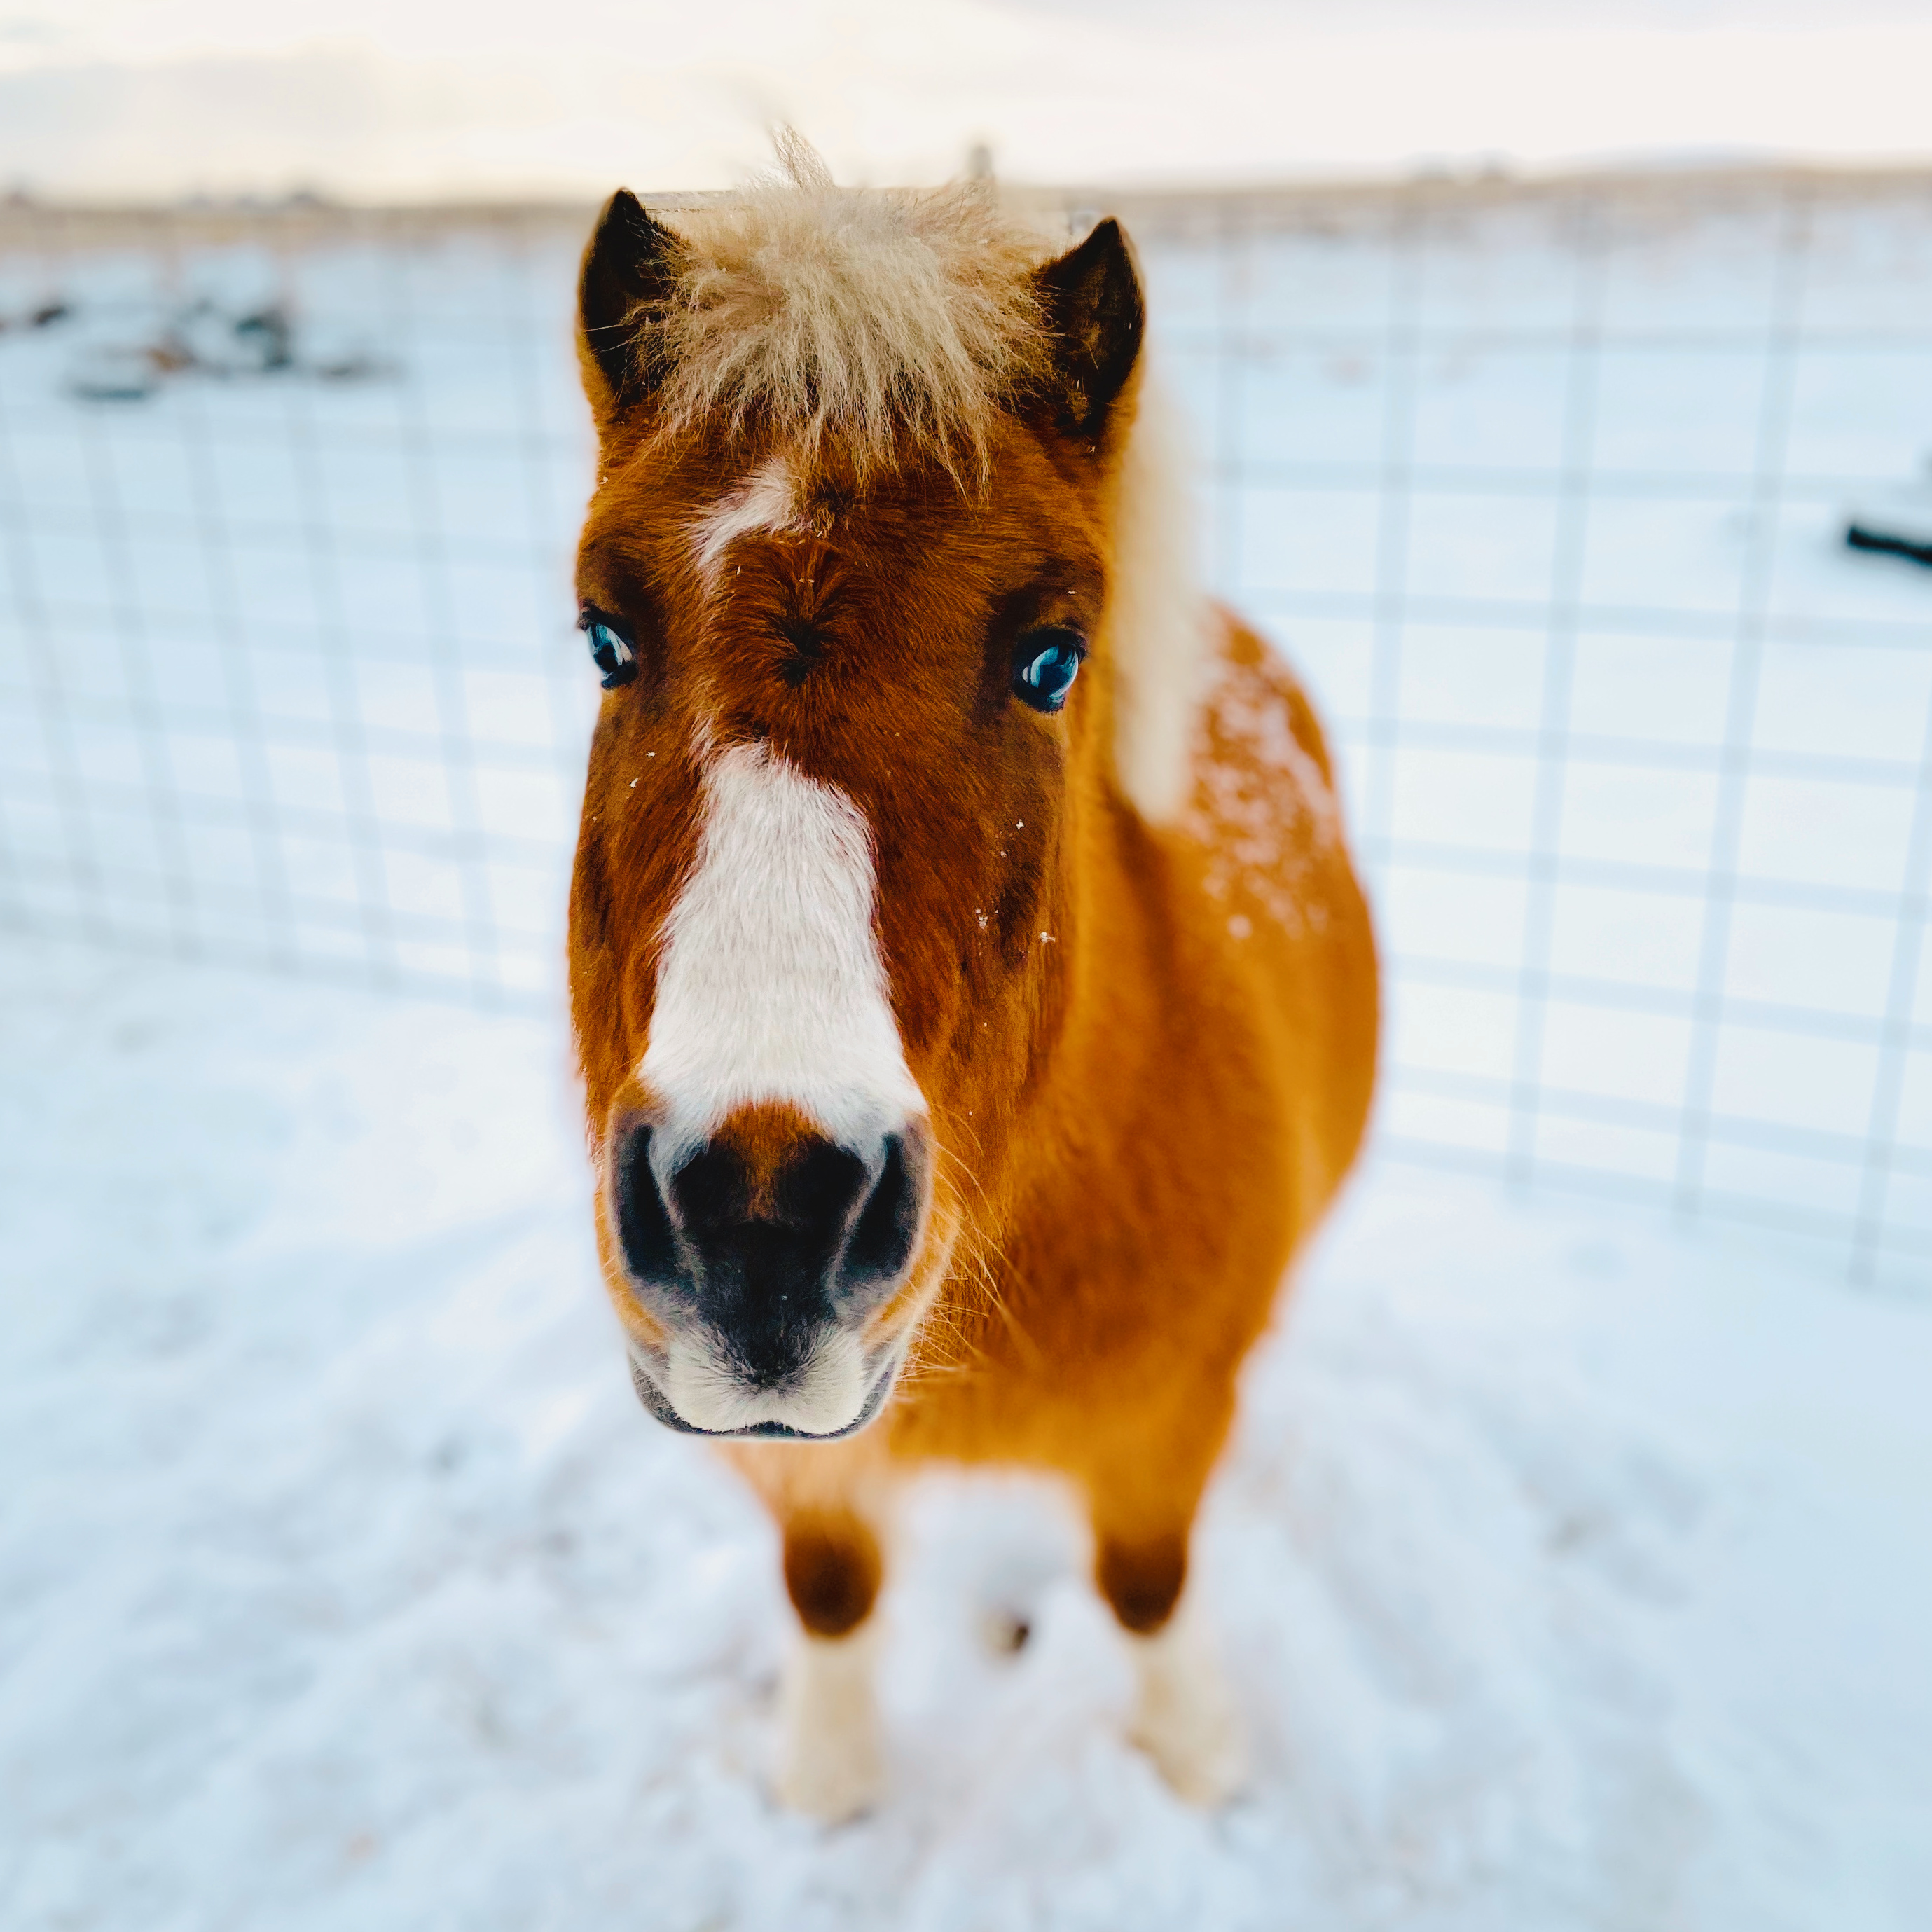 Winter Weather and Ponies